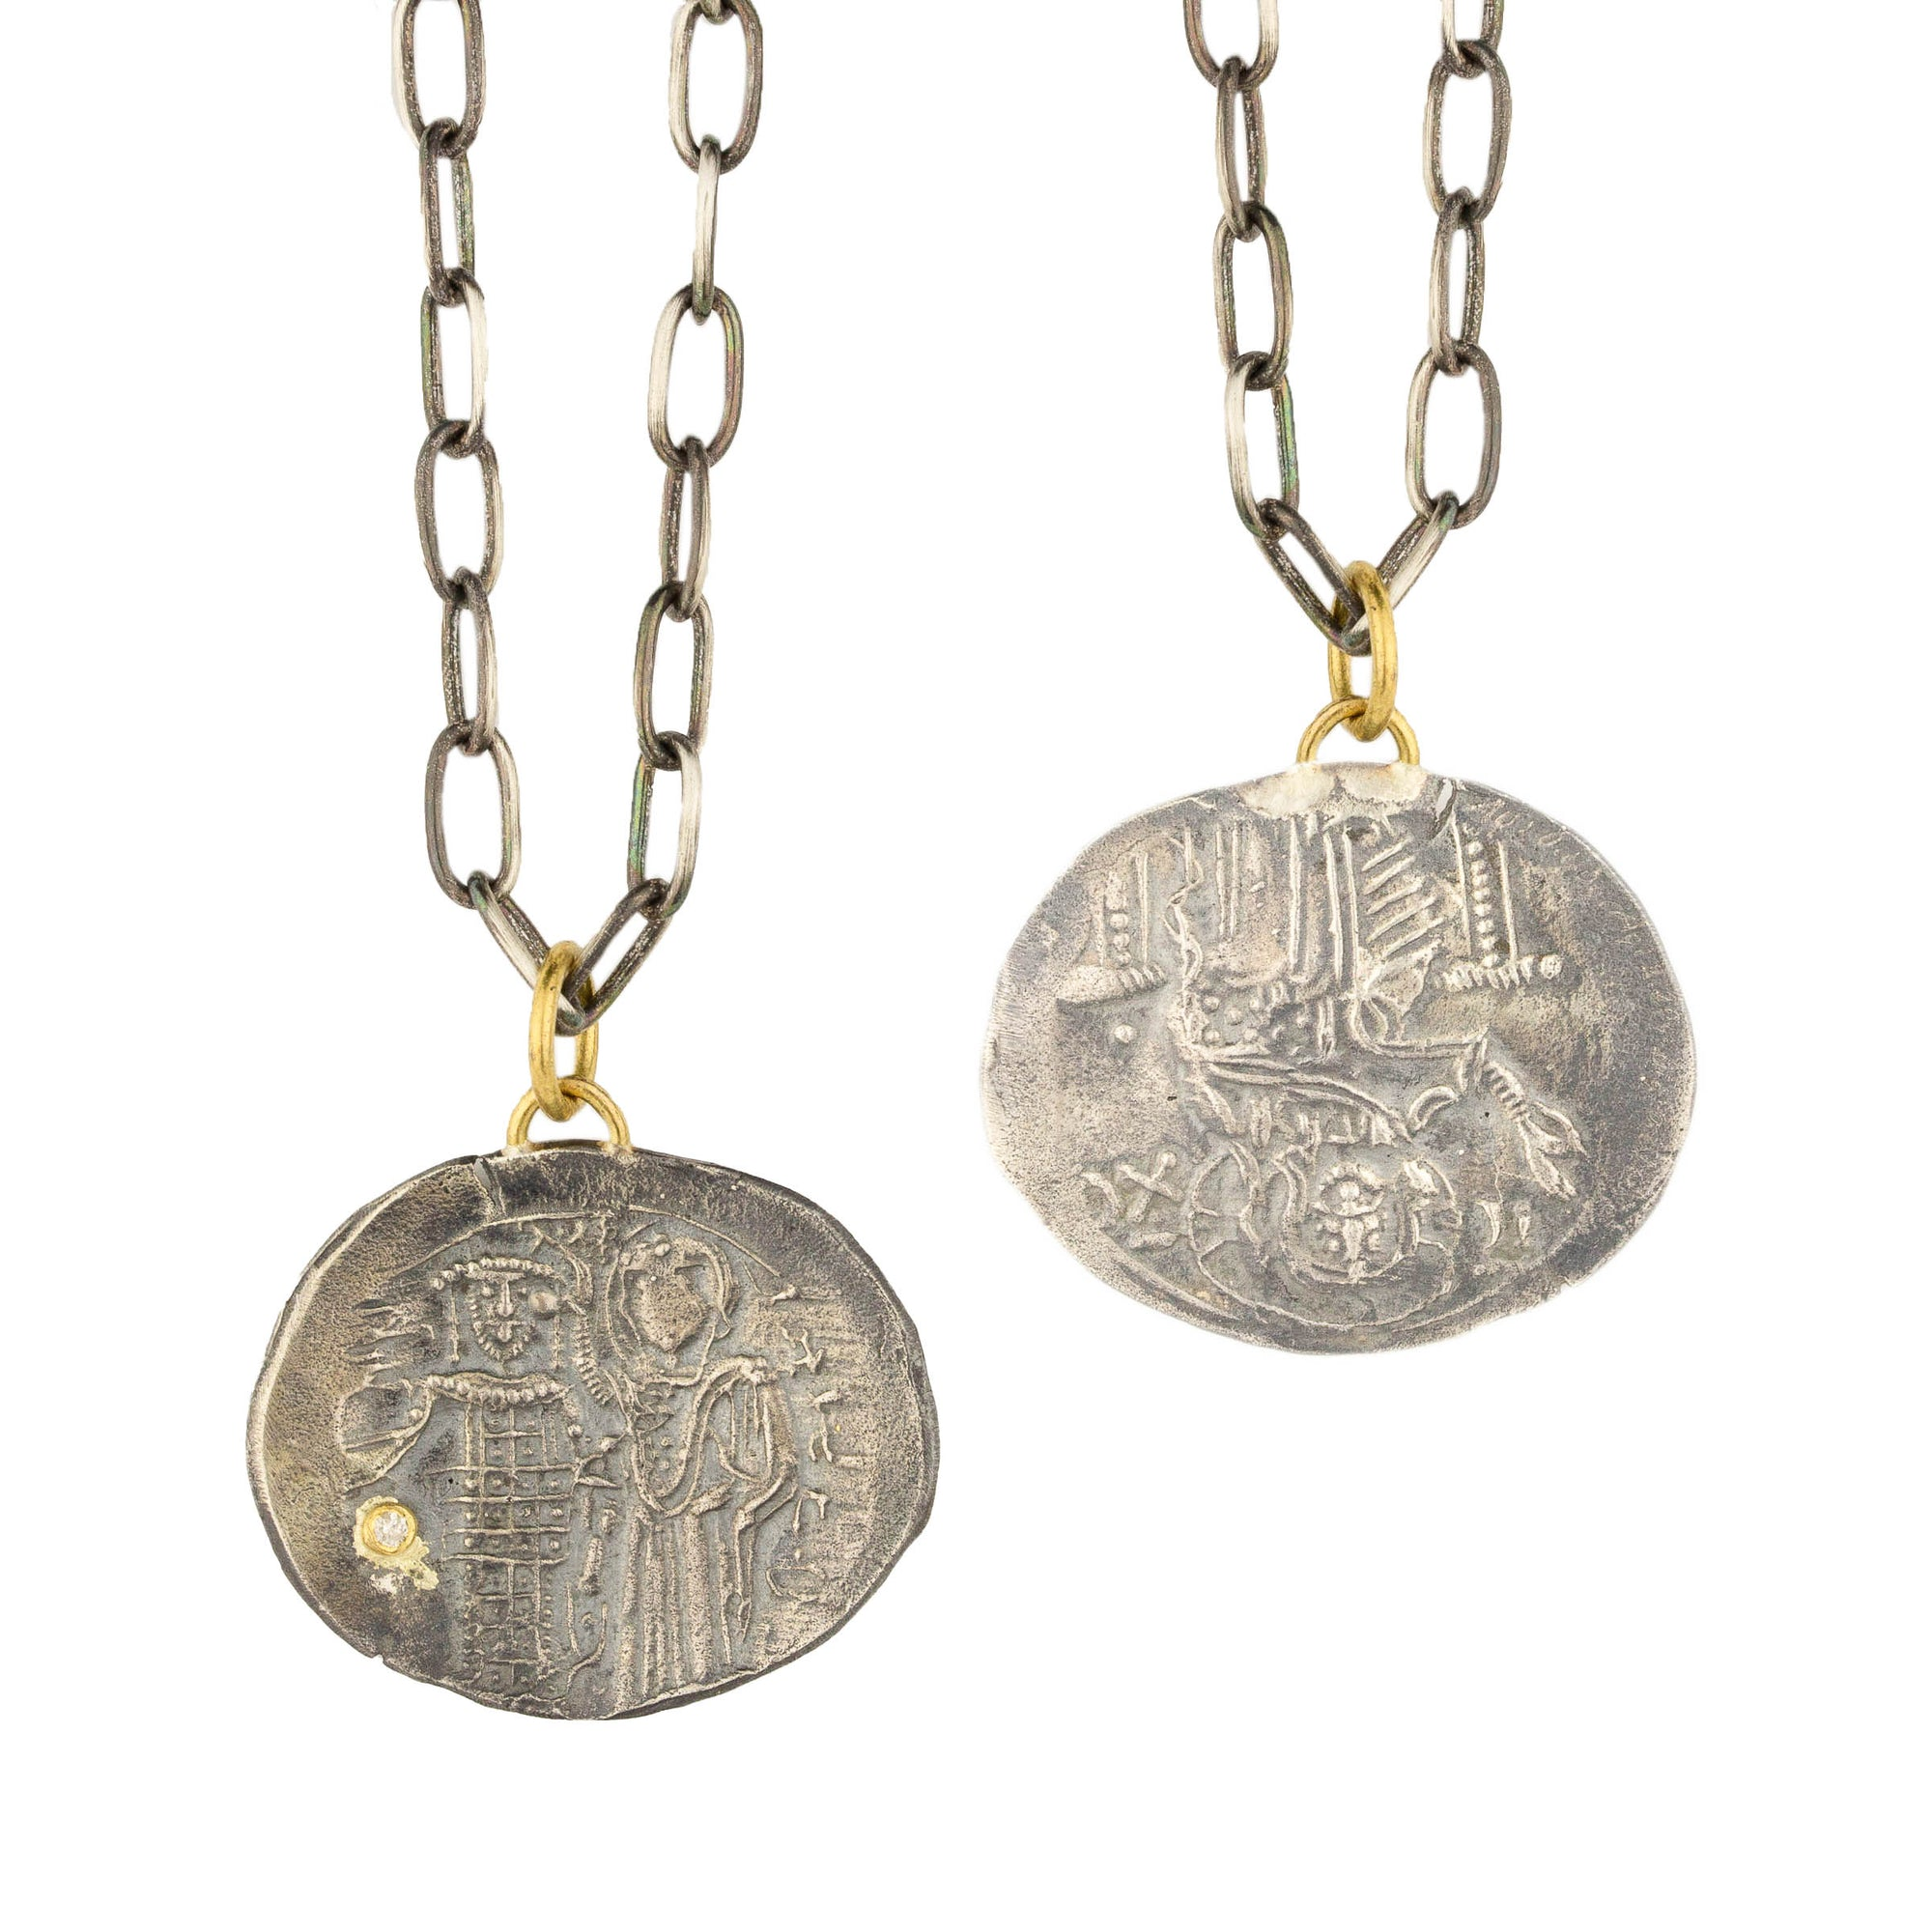 Justinian + Theodora Necklace